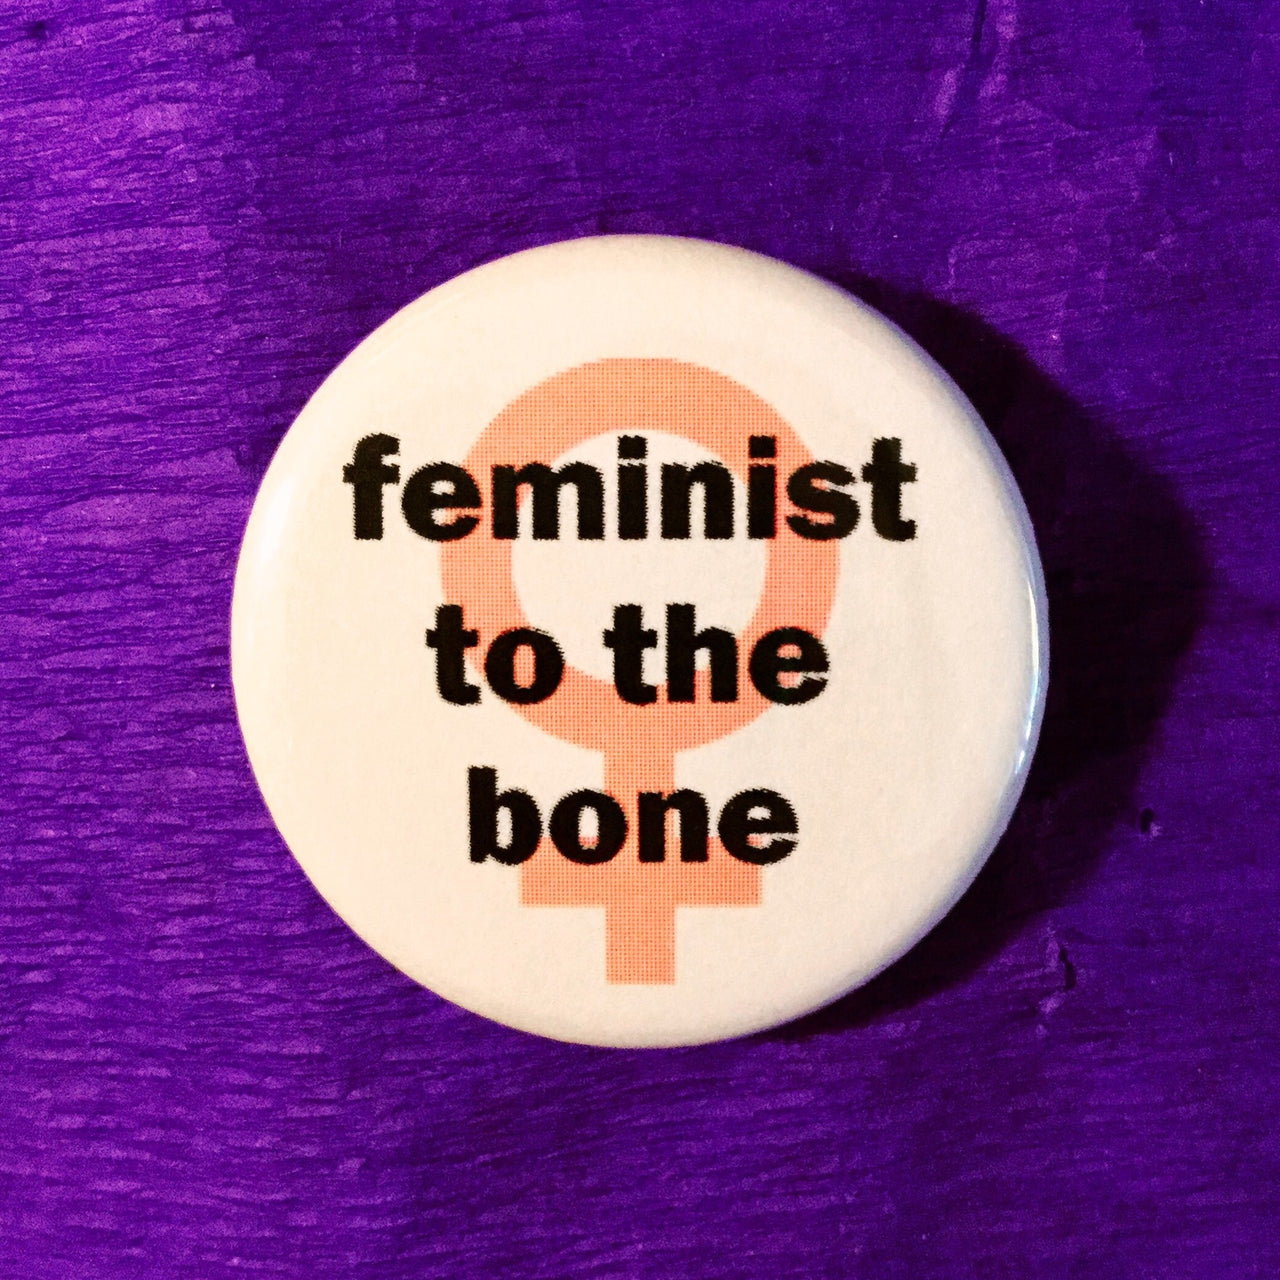 Feminist to the bone - Radical Buttons